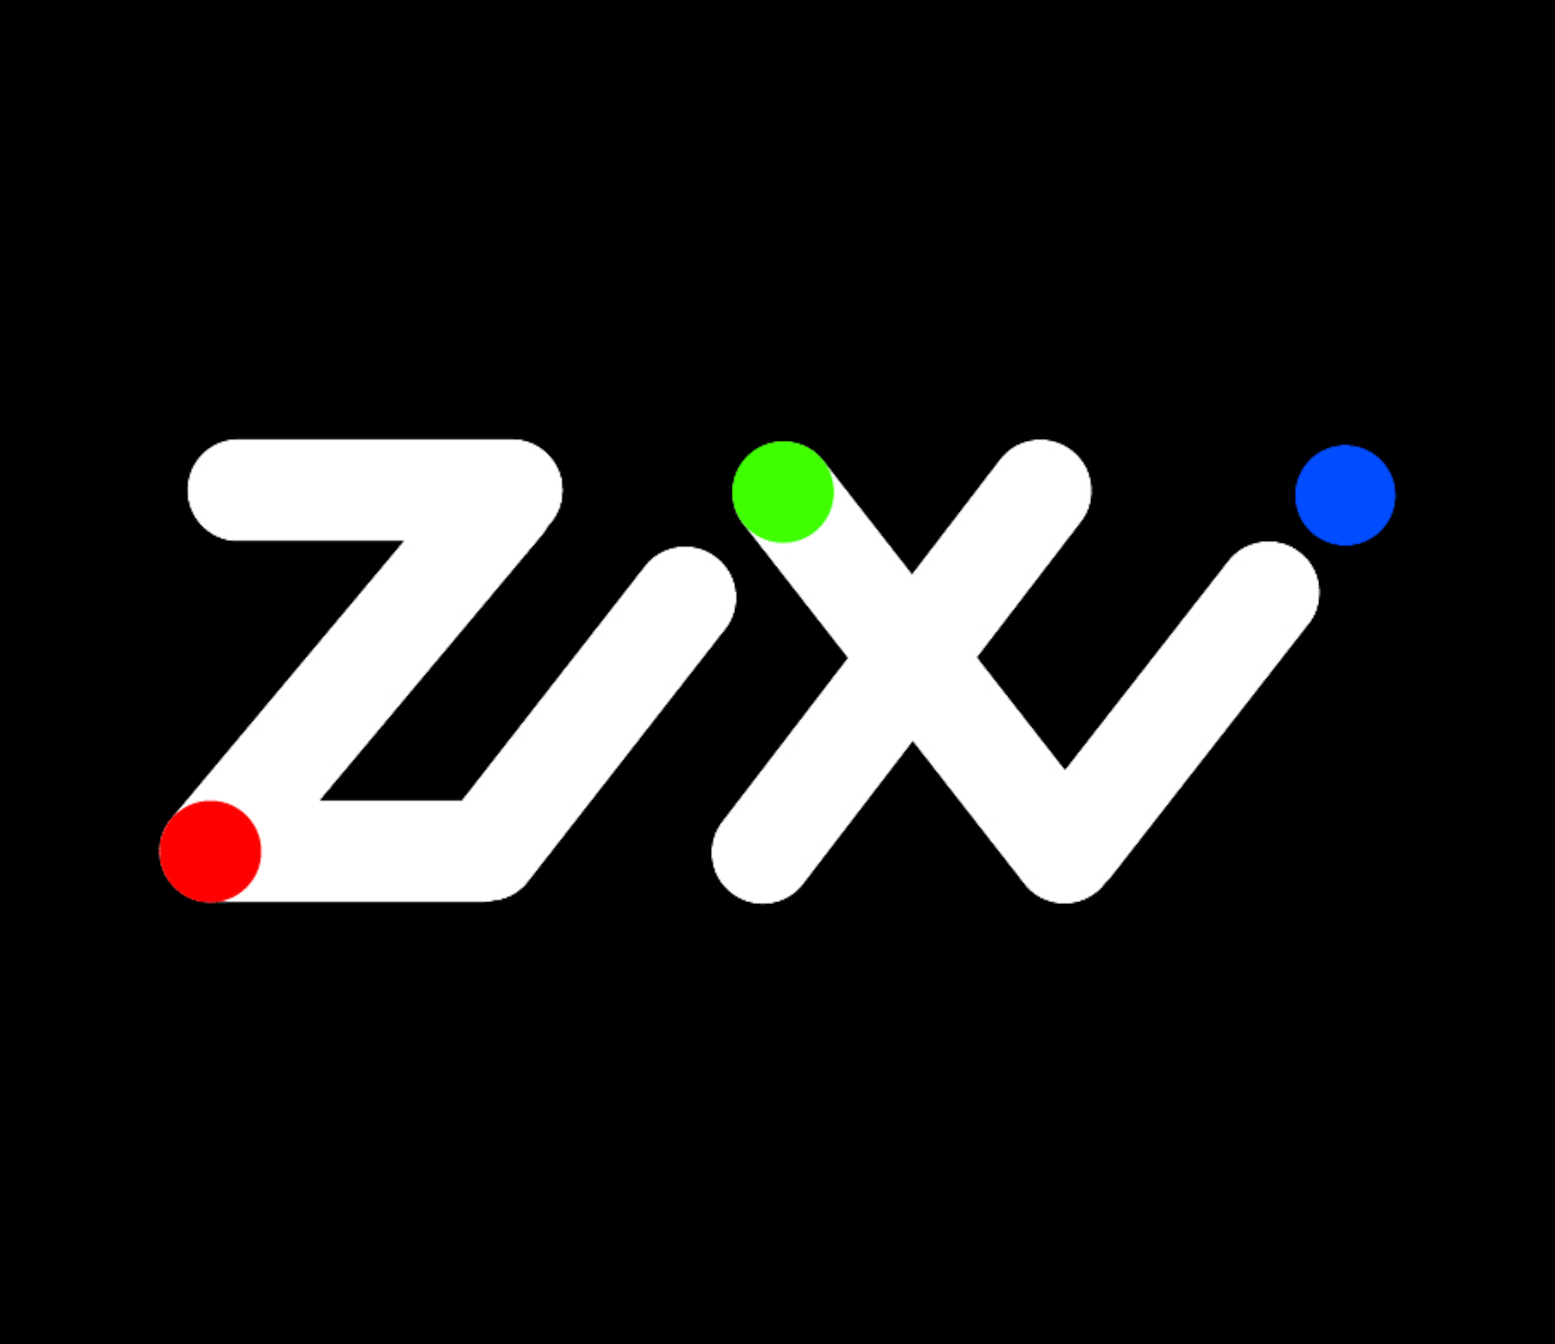 Zixi makes it easy for media companies to deliver live video events by enhancing IP networks to perform at broadcast quality, securely leveraging cloud infrastructures at scale.